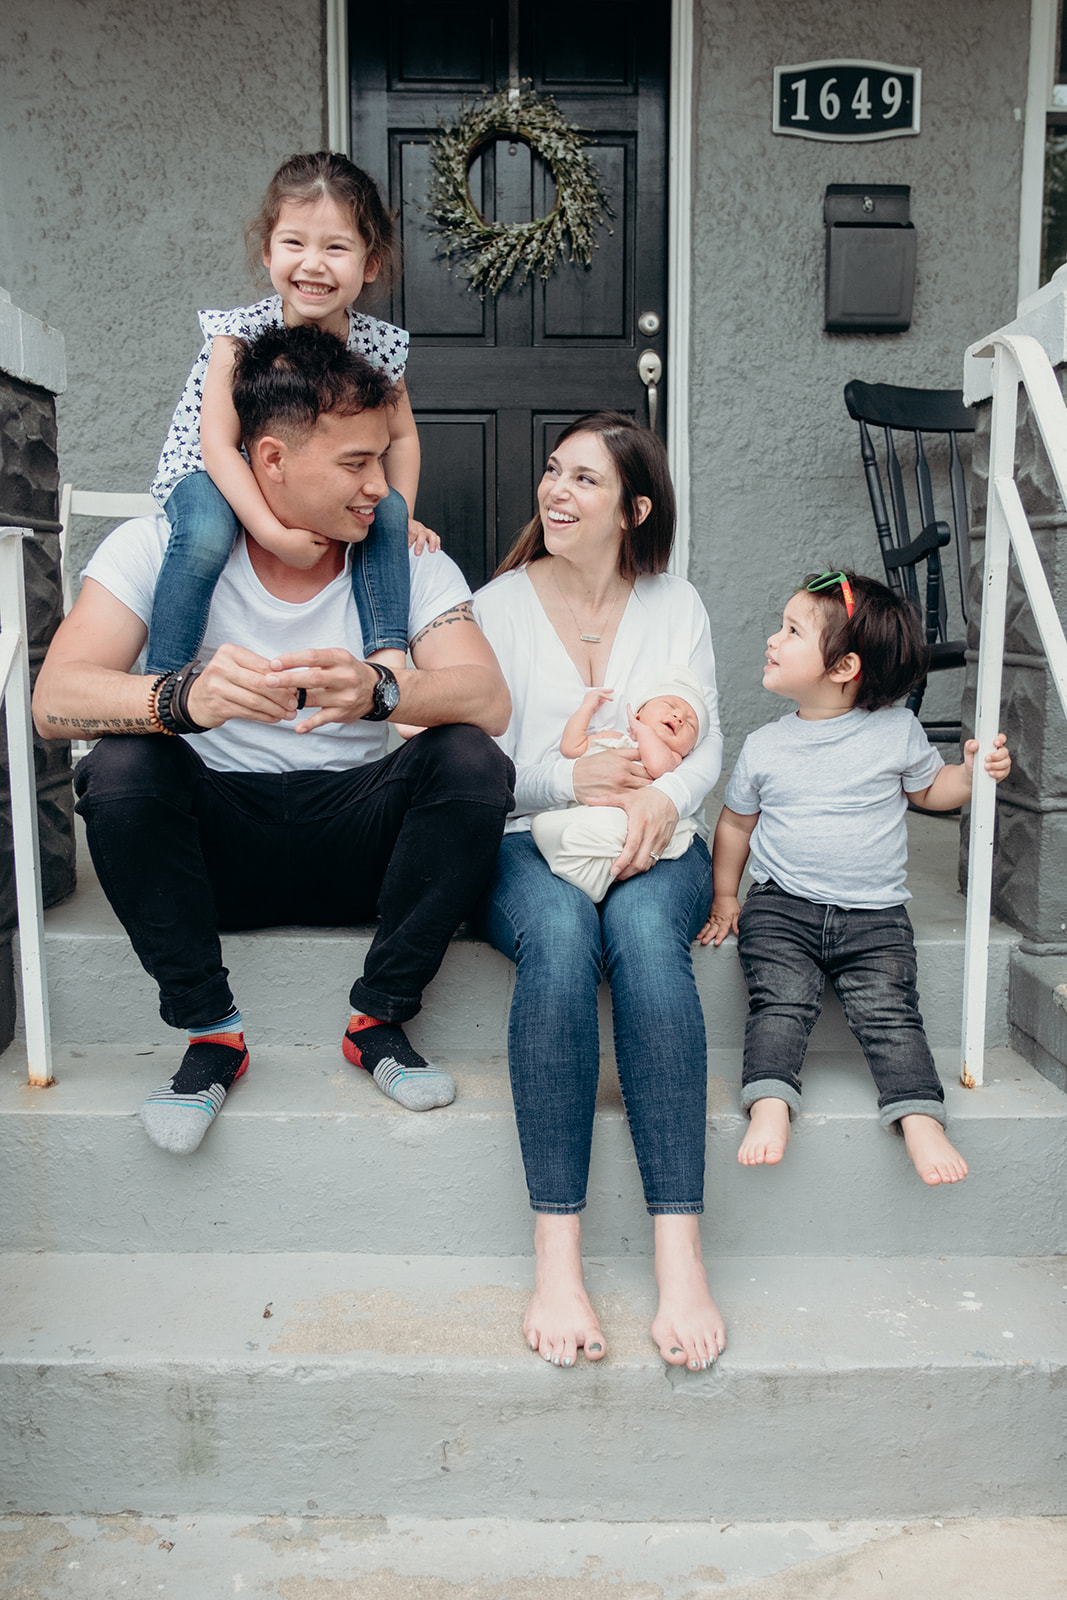 A family enjoys their front porch while snuggling their newborn in DC during an in home family photography session.